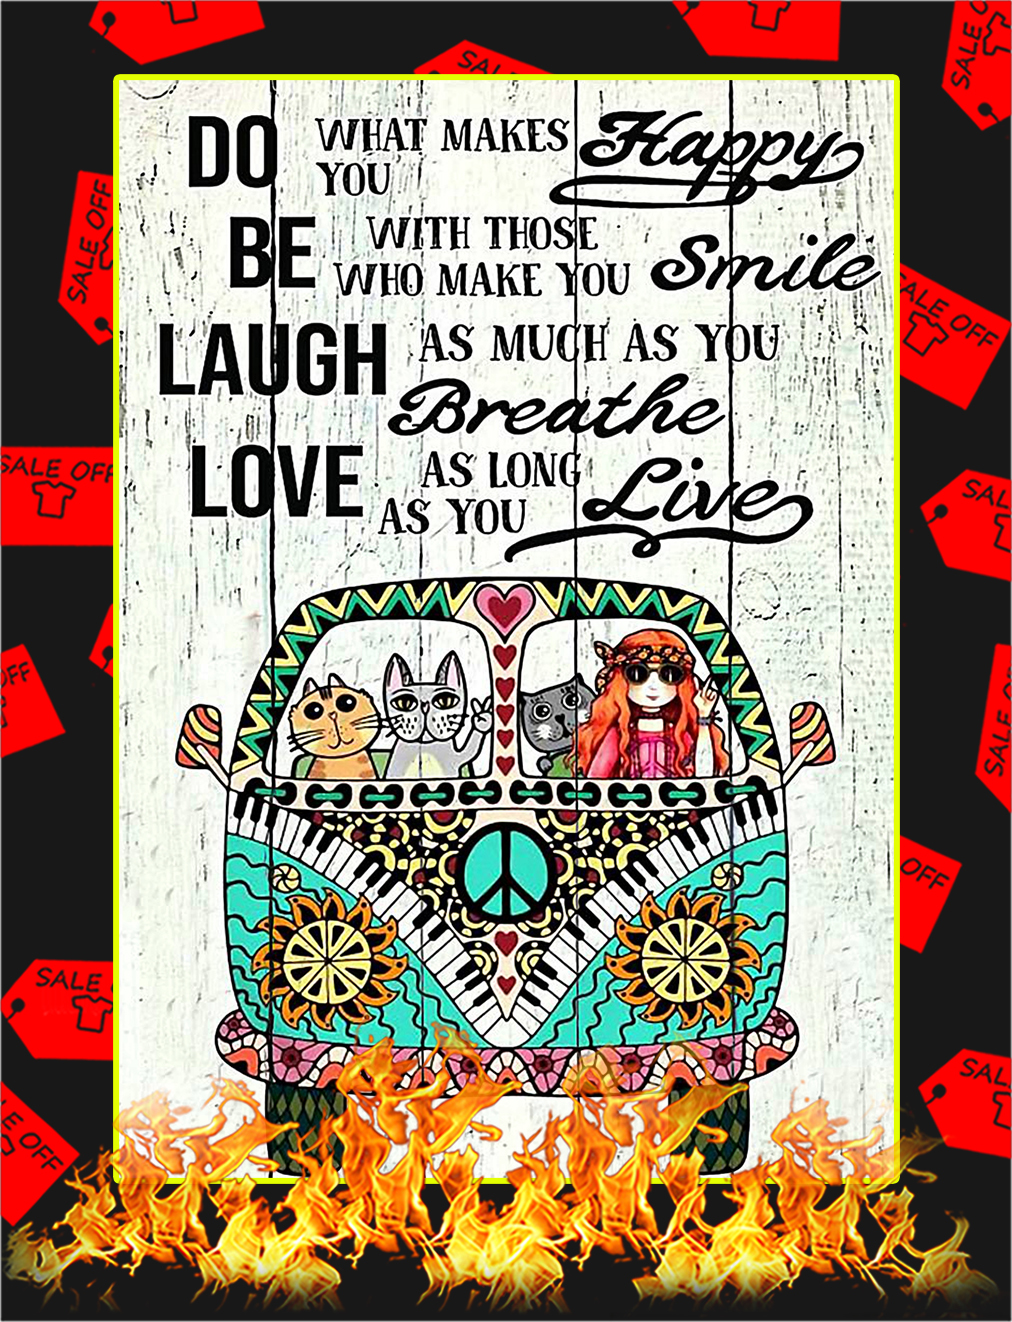 Hippie Girl and Cat do what makes you happy Poster - A3